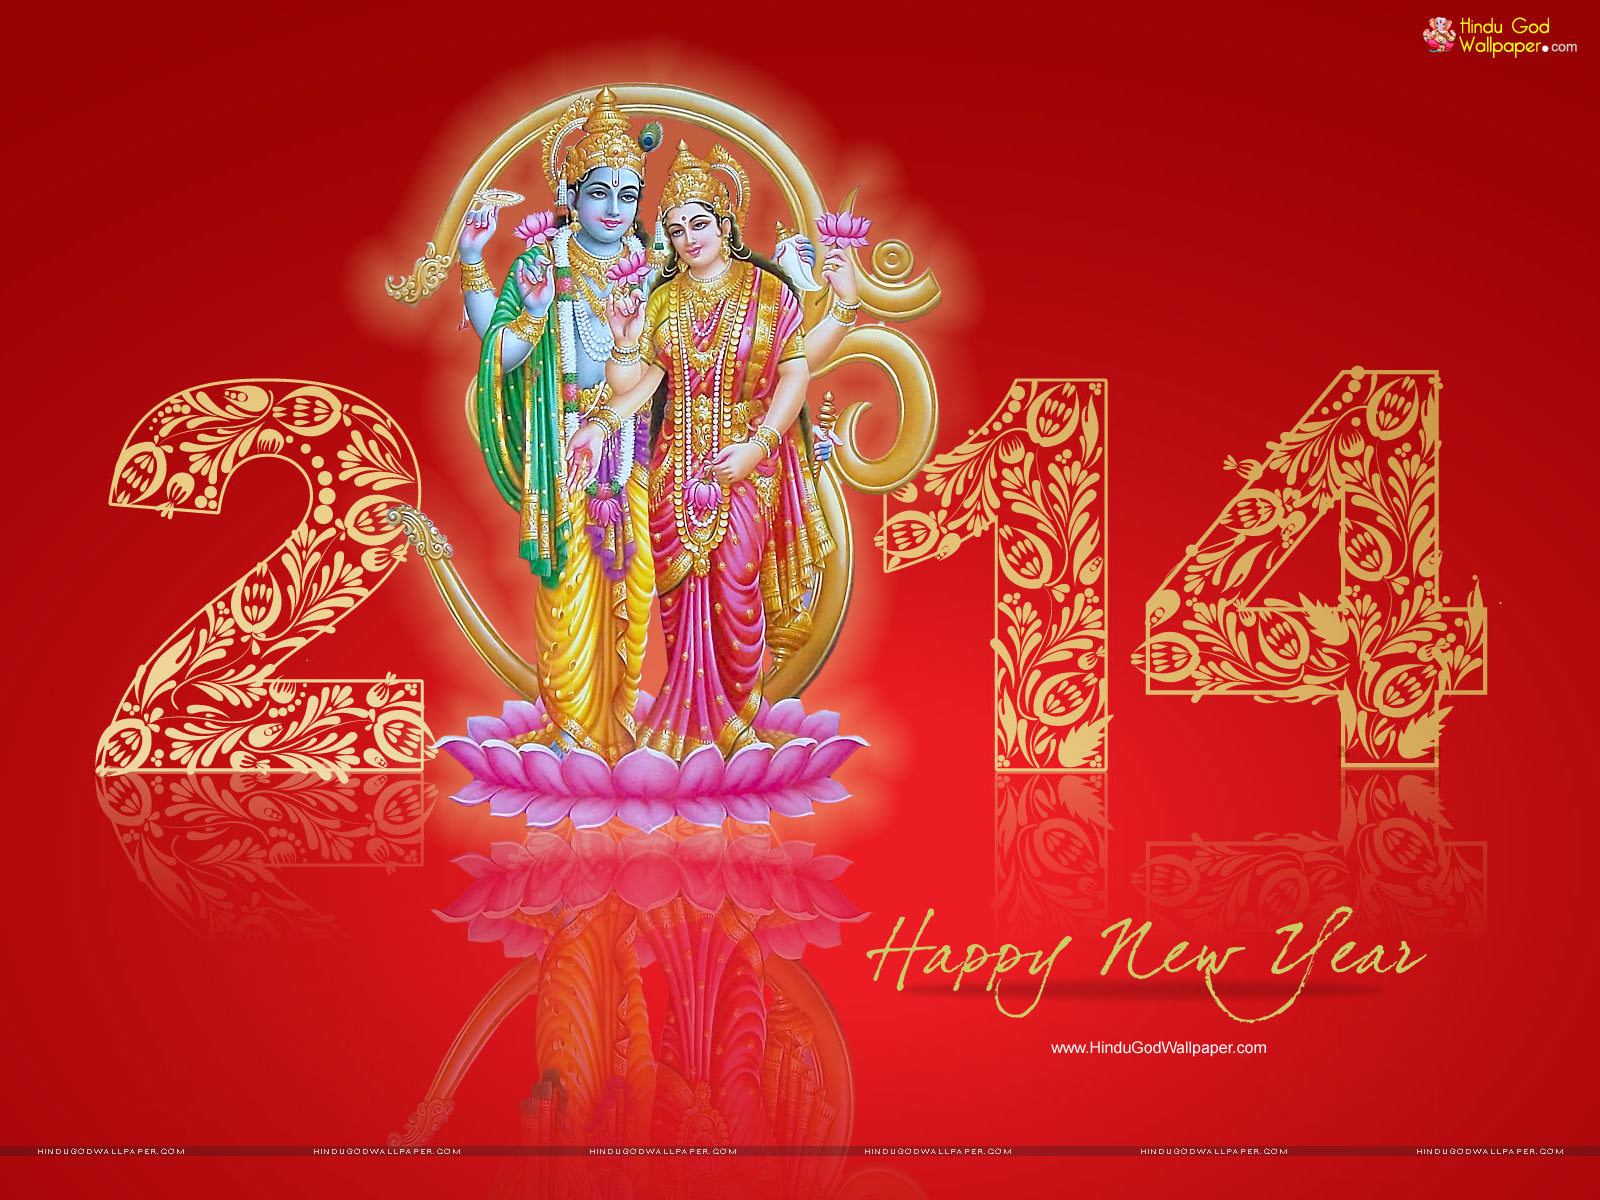 New Year wallpapers Happy new year from India 051636 jpg 1600x1200